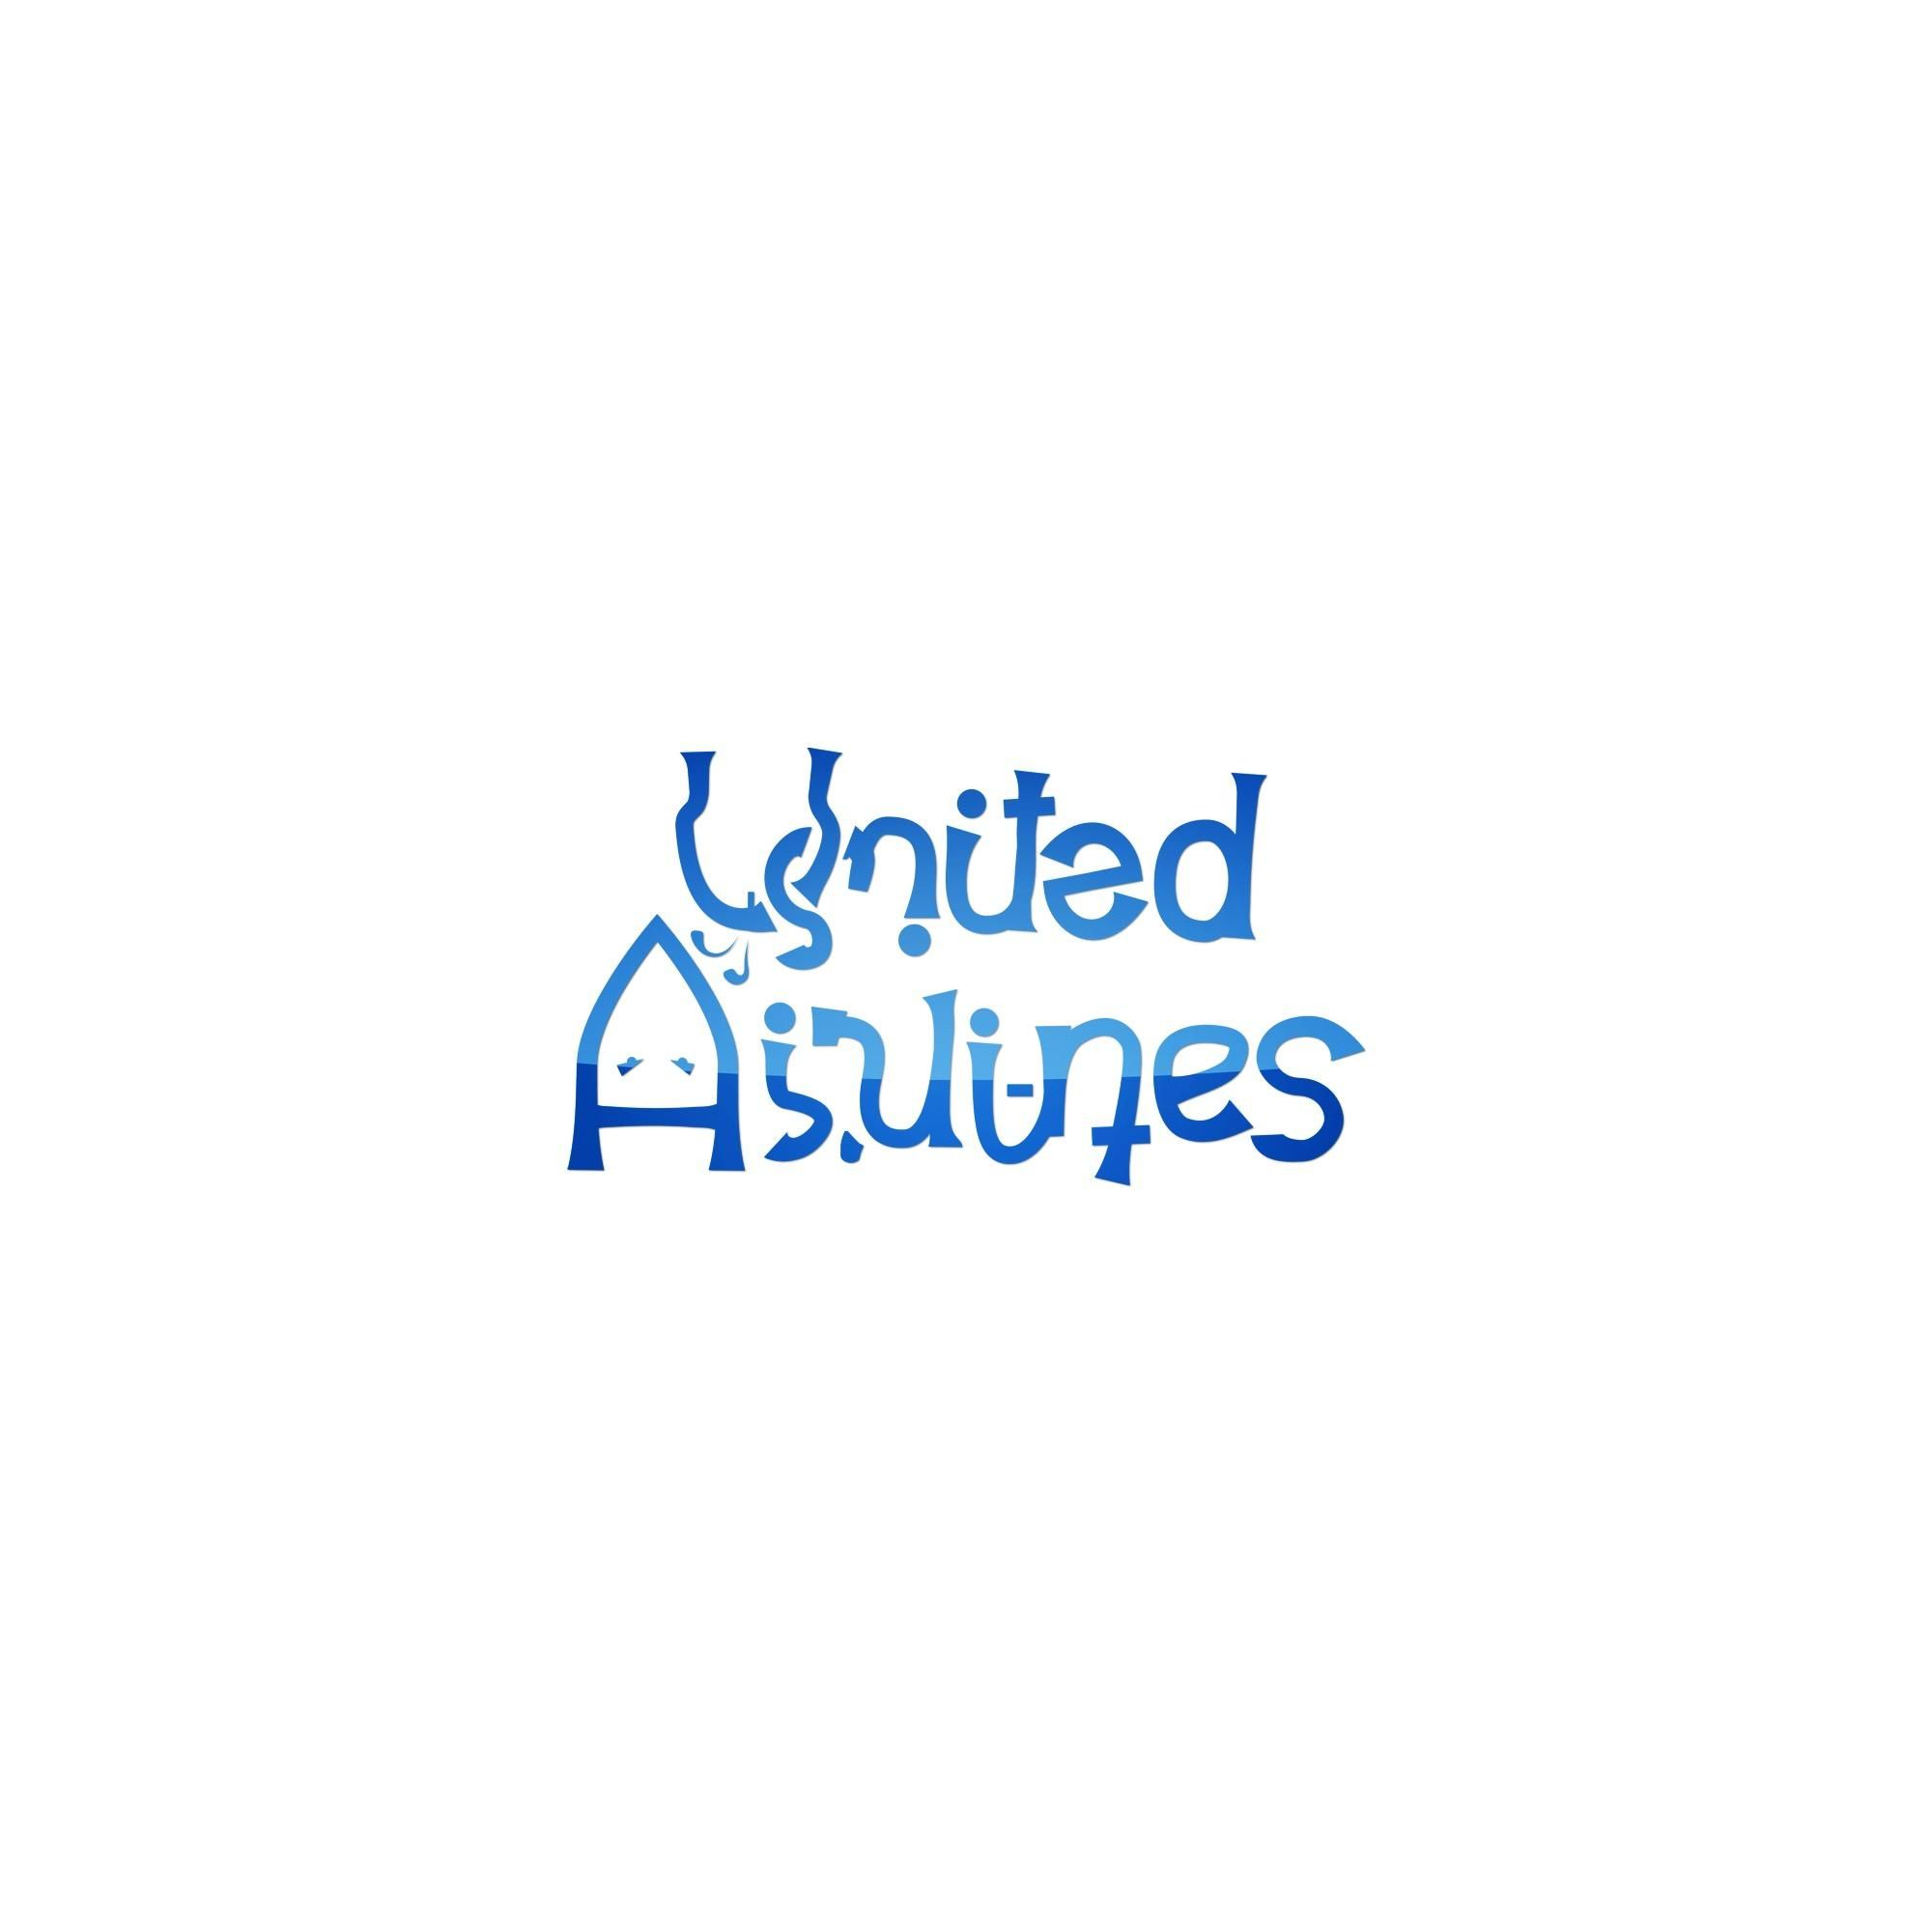 united airlines new logo look at it upside down funny pinterest